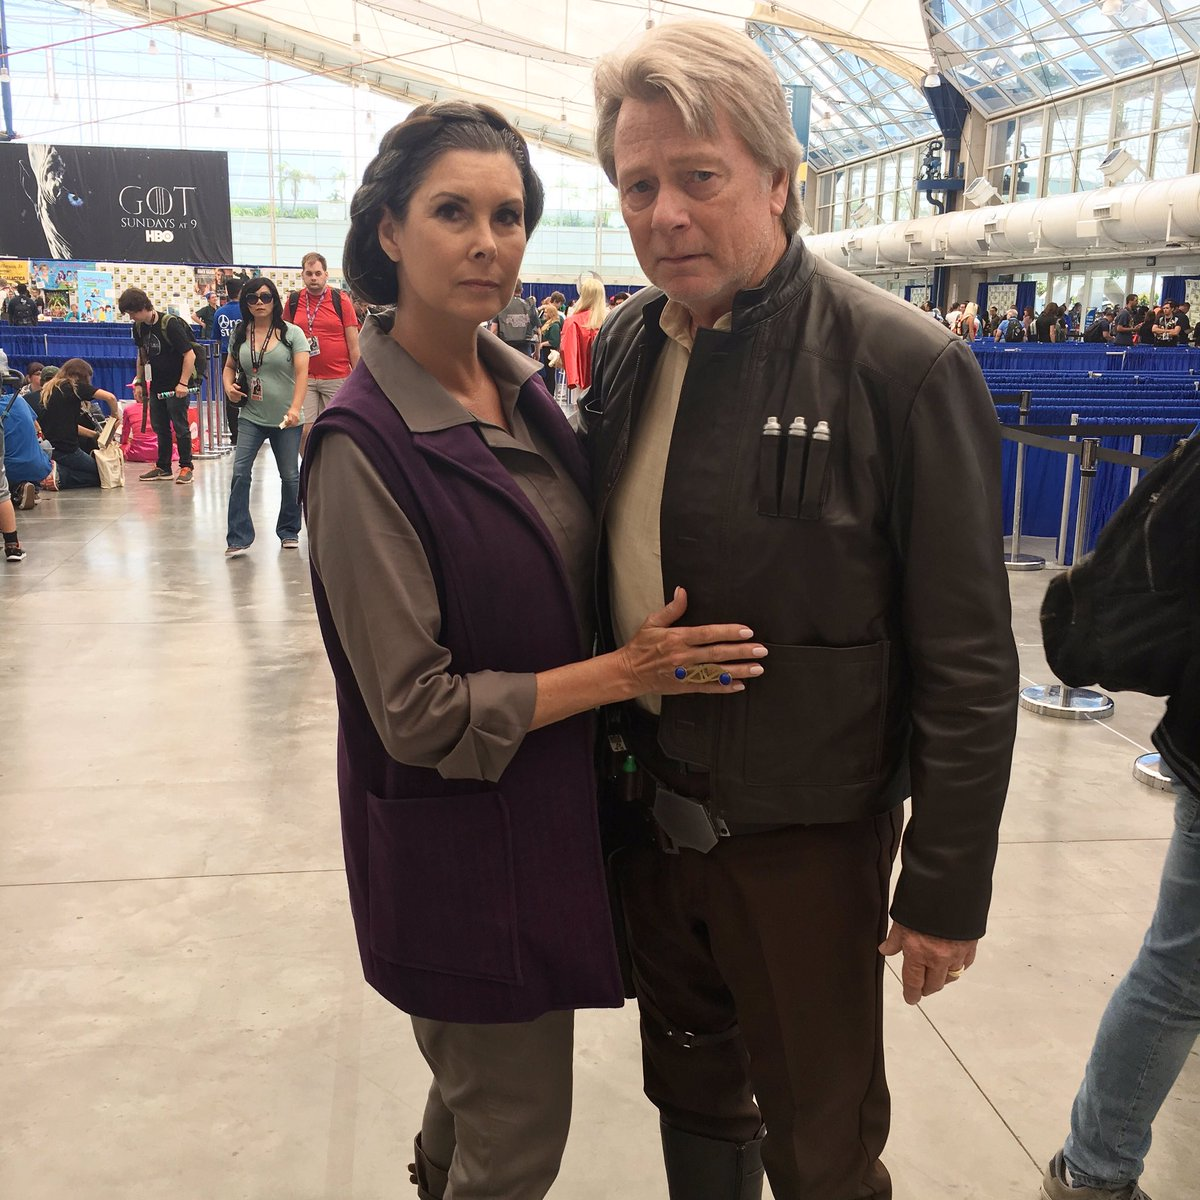 I saw people burst into applause when these #starwars cosplayers walked the con floor. ❤️